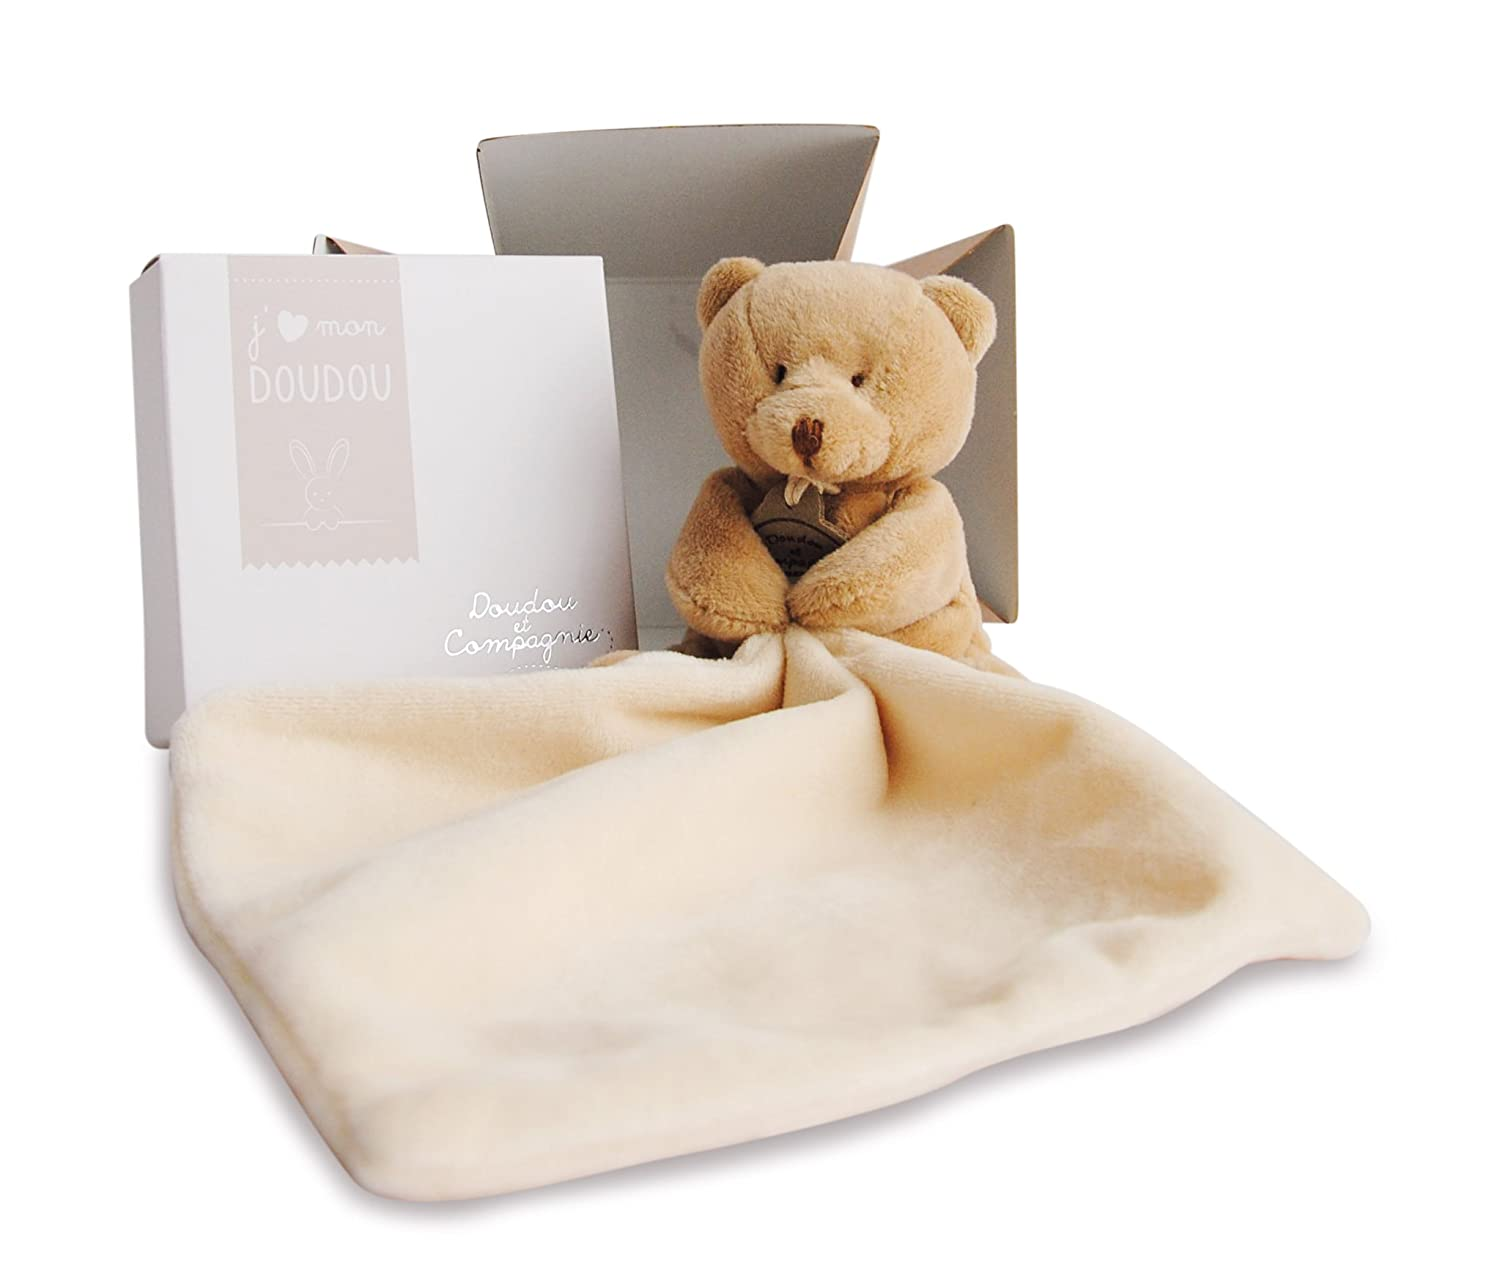 Doudou et Compagnie 10 cm Natural Bear and Towelling Doudou with Gift Box Shreds 302